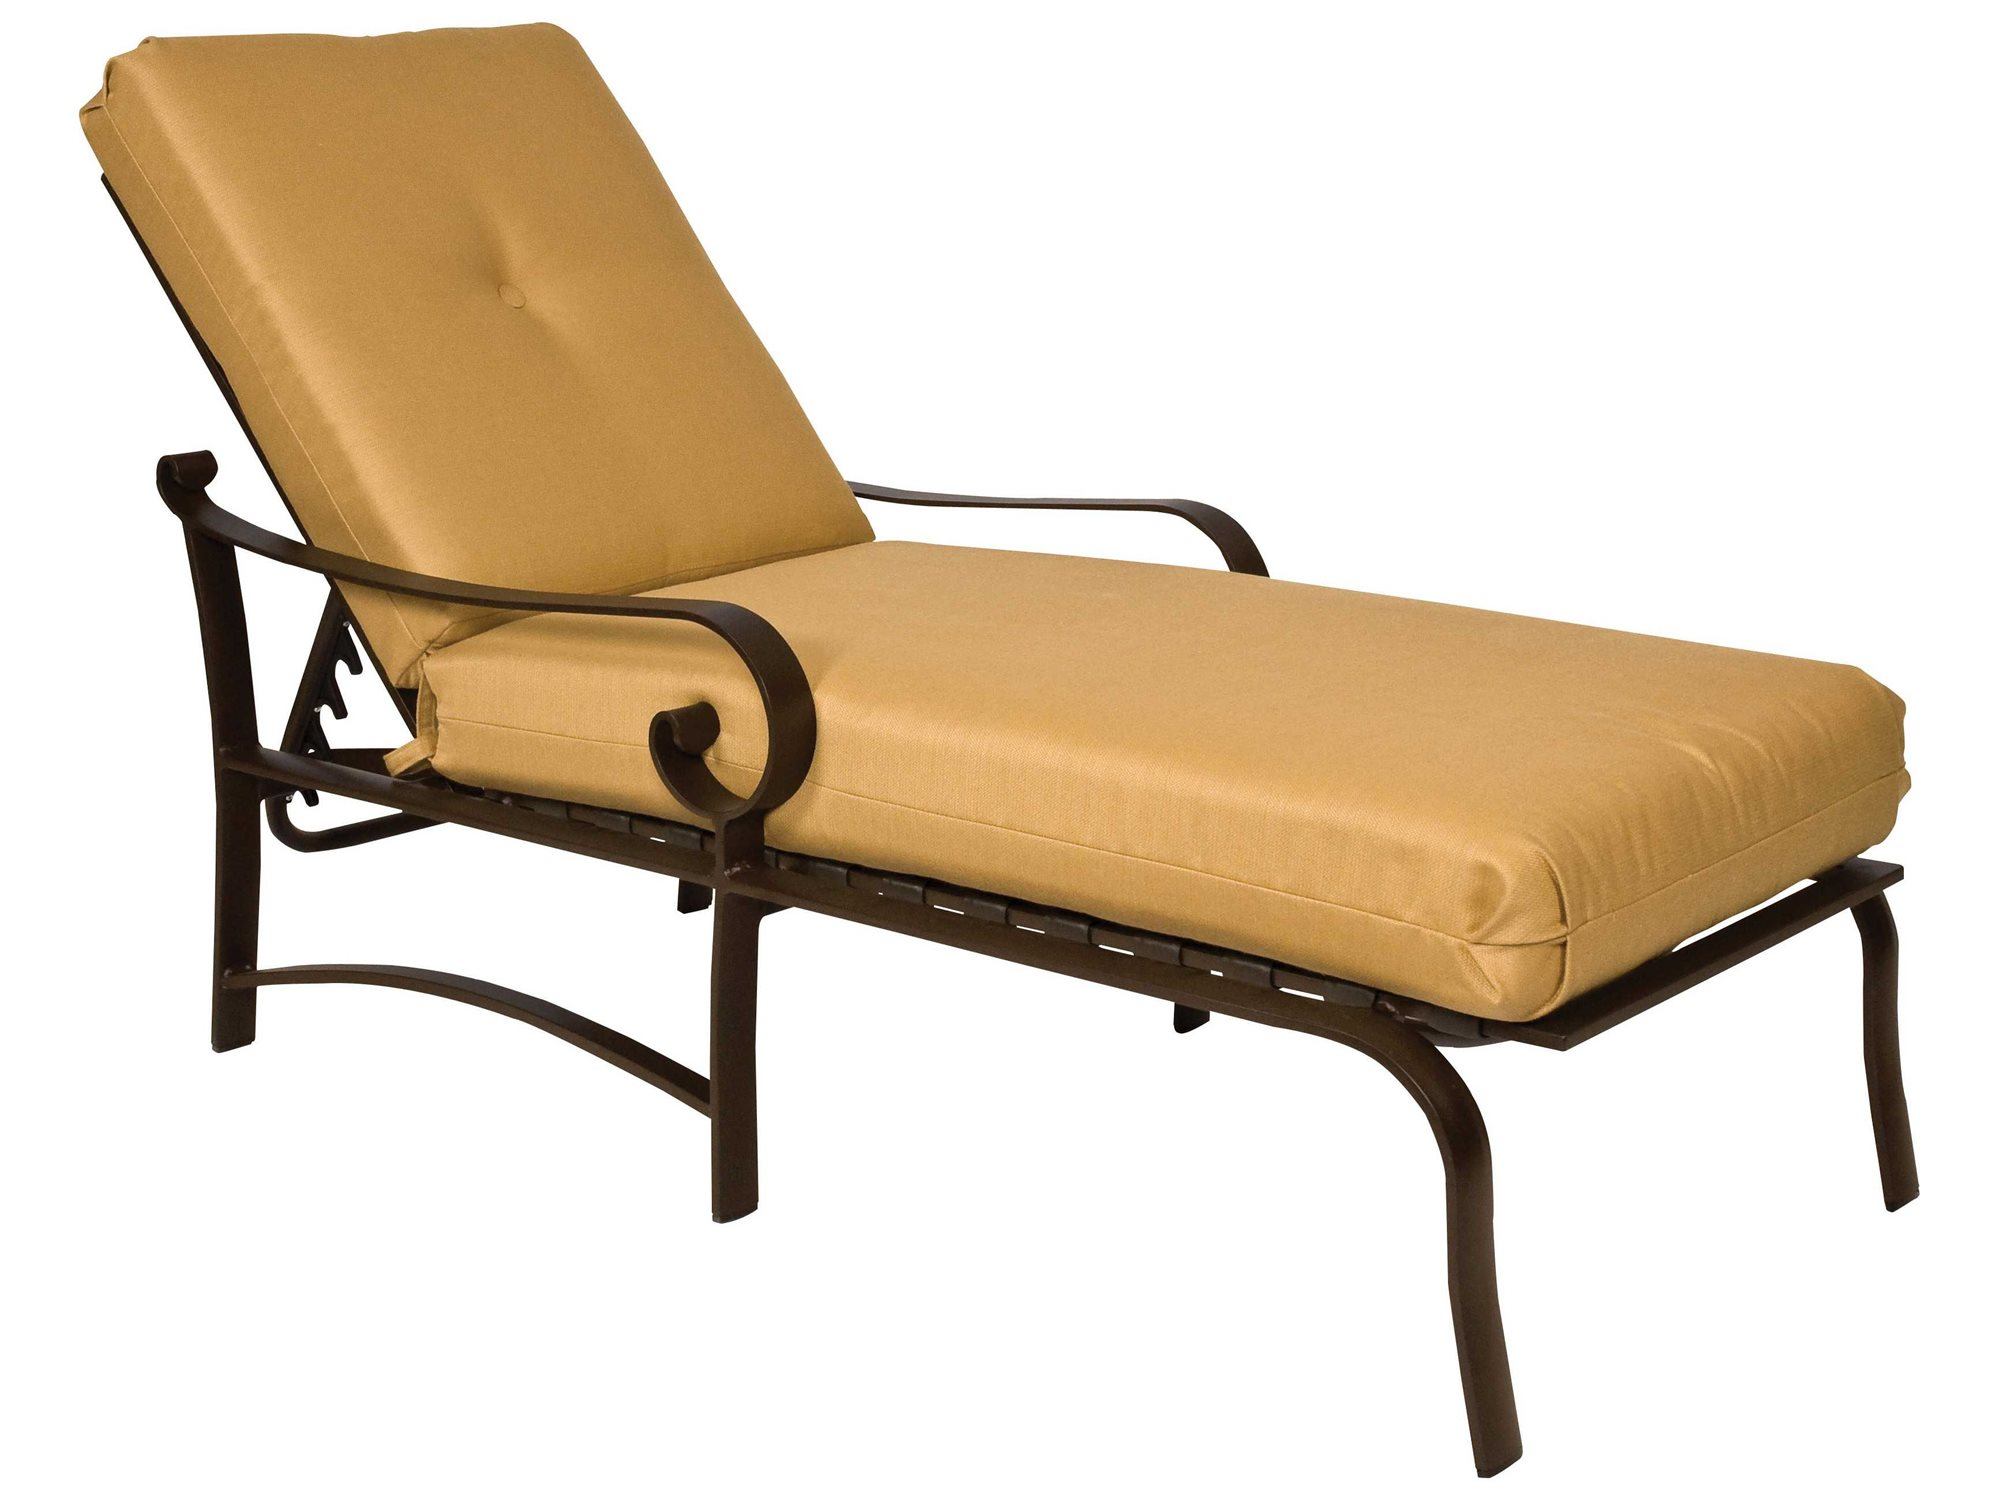 Woodard belden adjustable chaise lounge replacement for Chaise lounge cushion